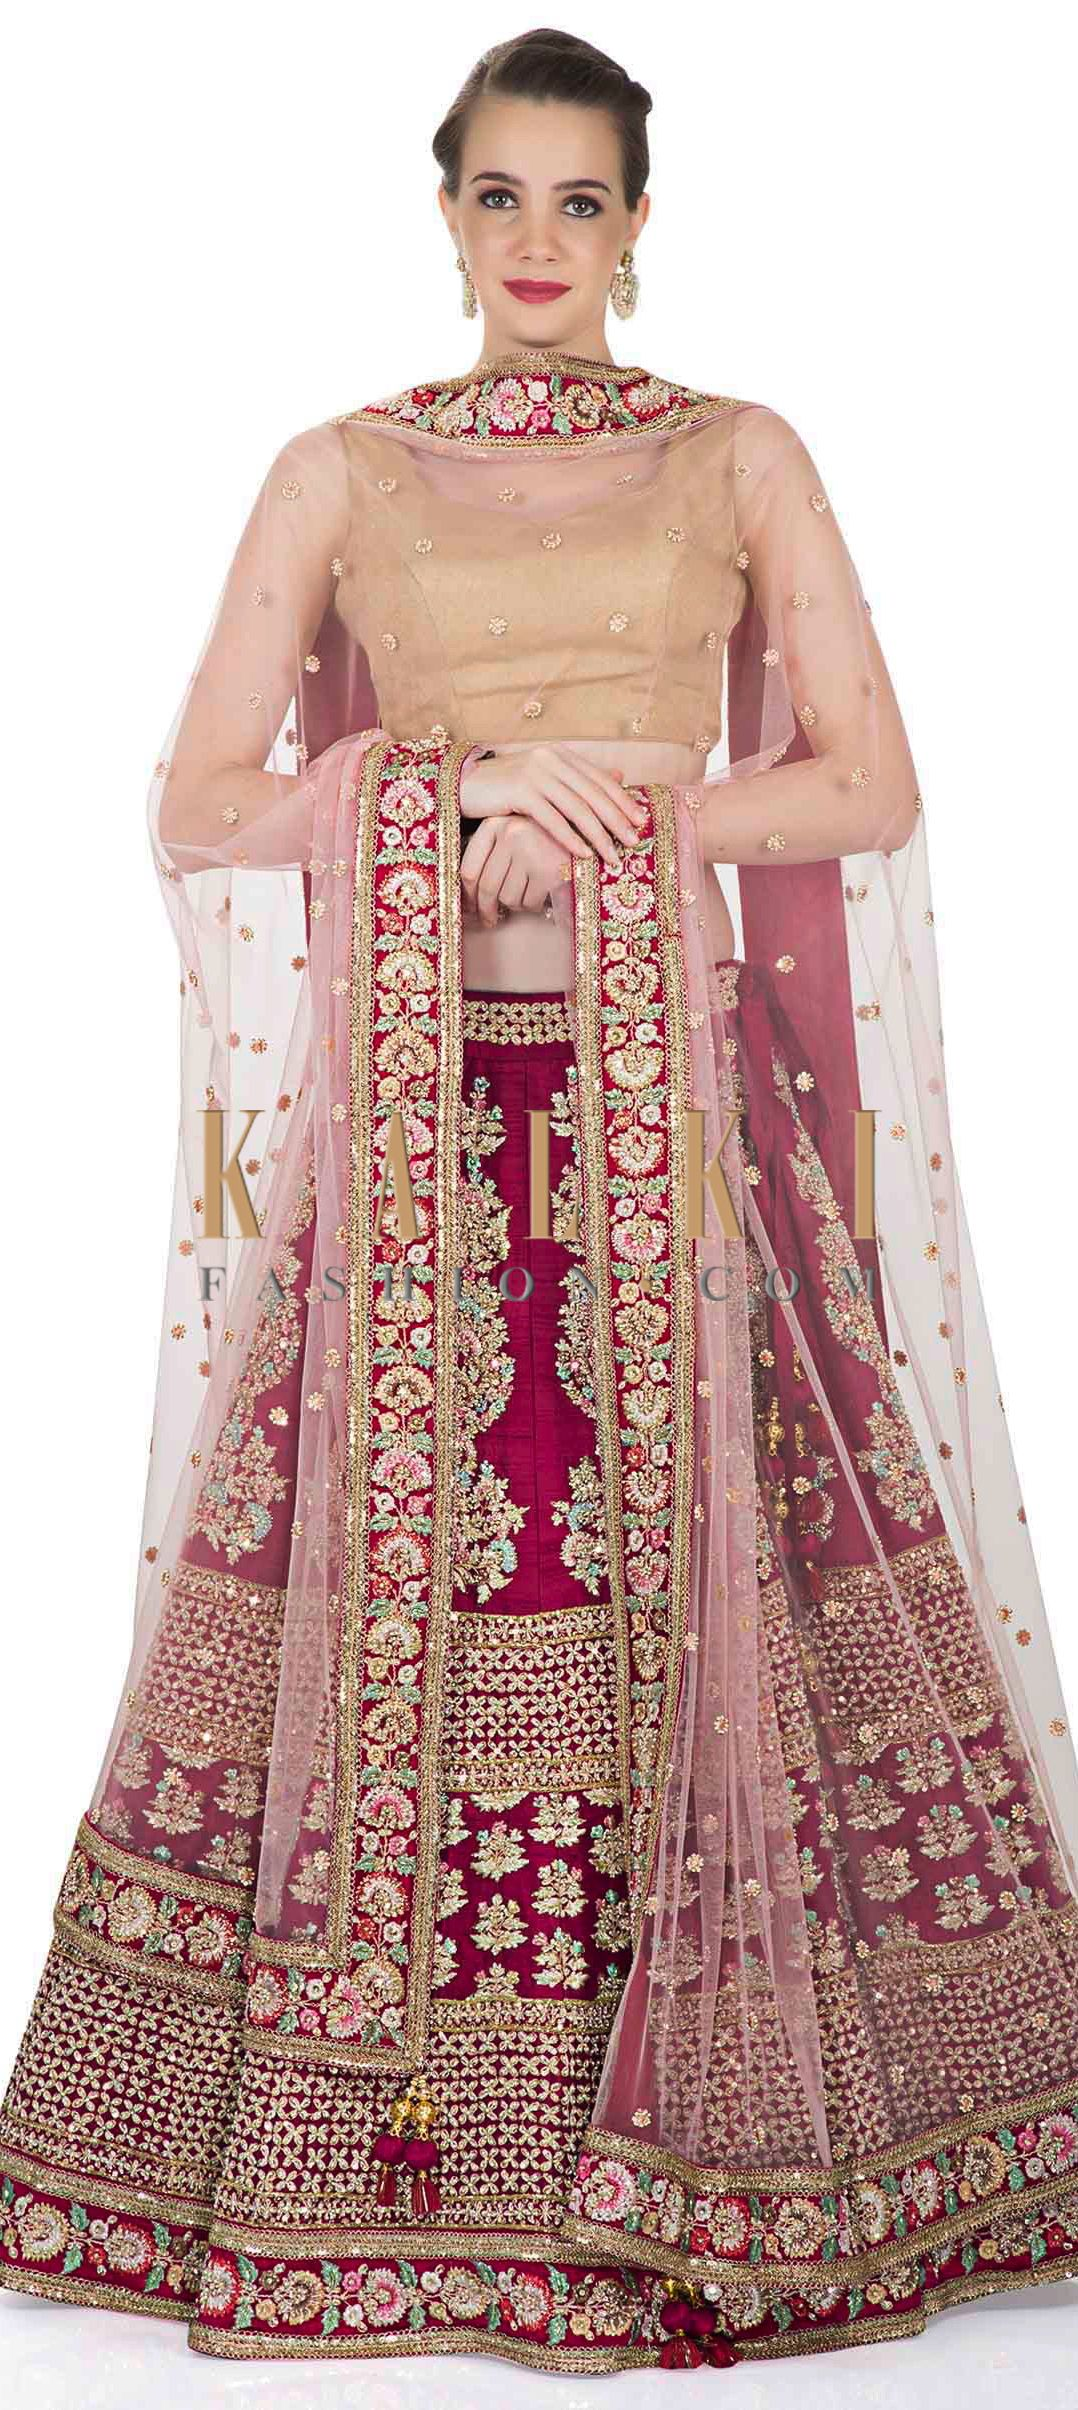 e98ab66f9d Rani Pink Raw Silk Lehenga, Blouse and Pink Net Dupatta with Resham,  Sequins and Zari only on Kalki